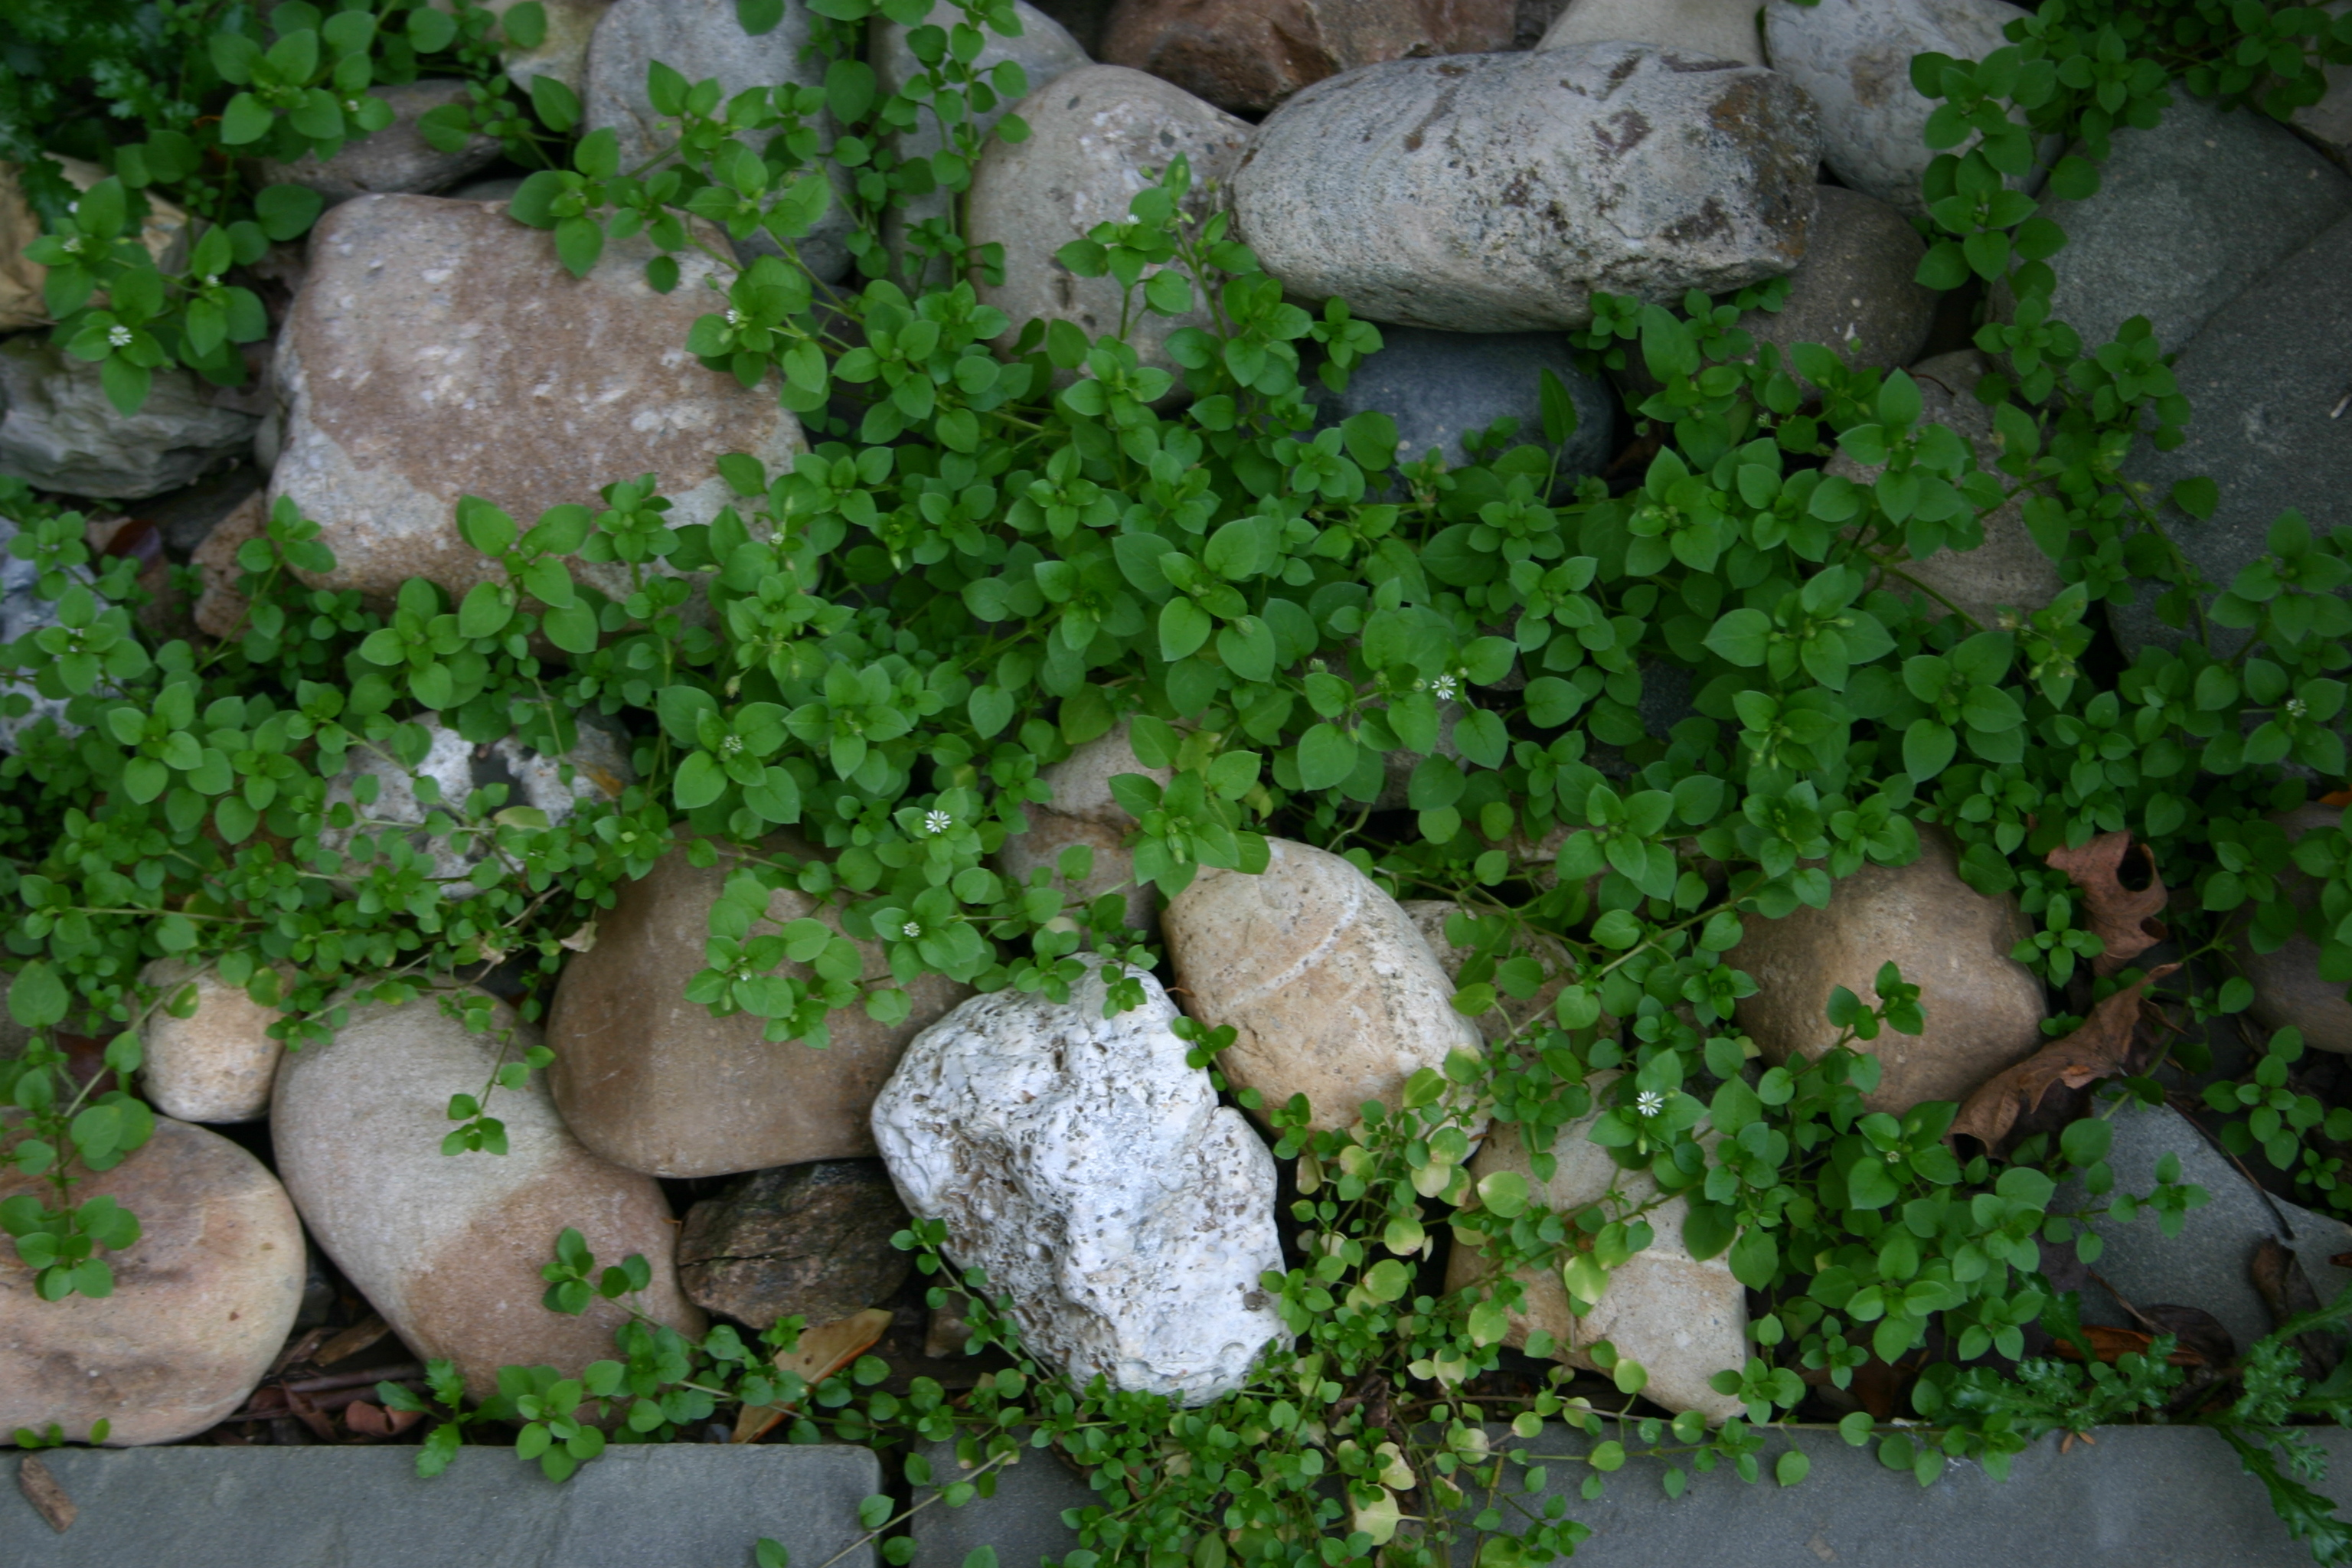 Image of common chickweed